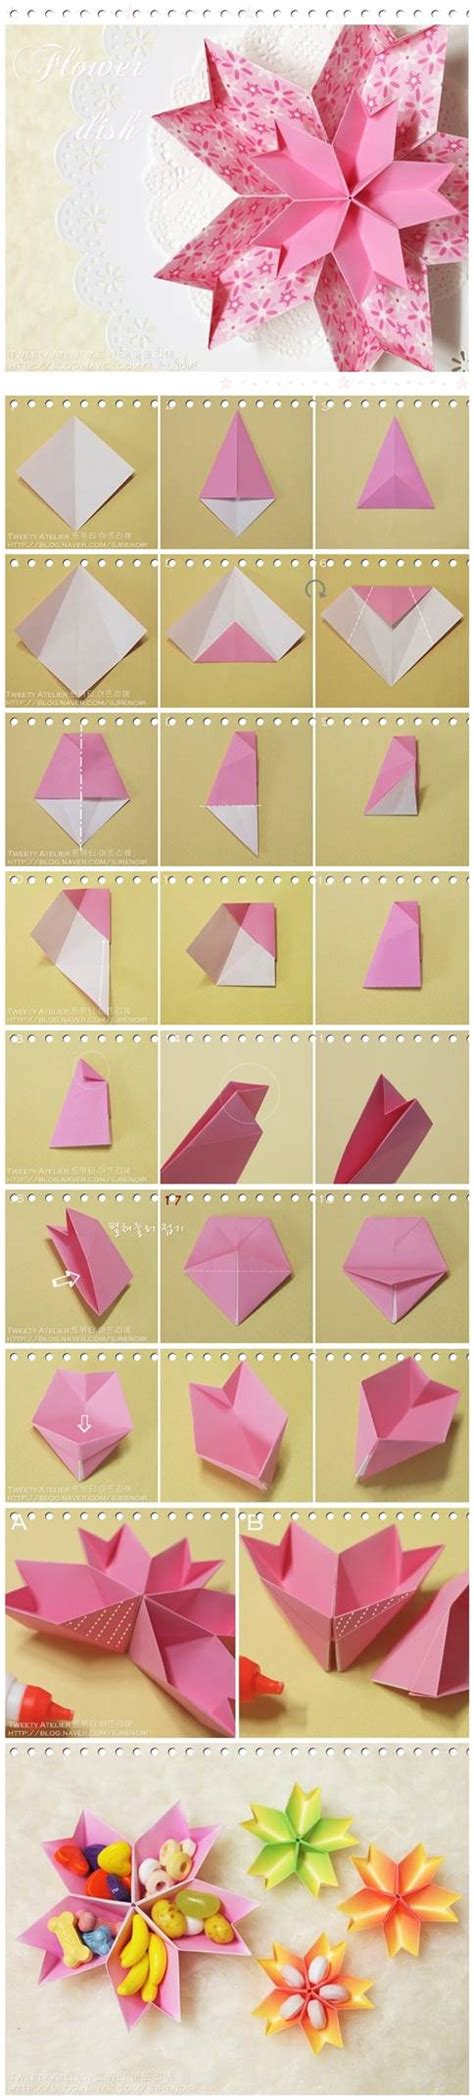 How To Do Paper Crafts Step By Step - how to make paper flower dish step by step diy tutorial